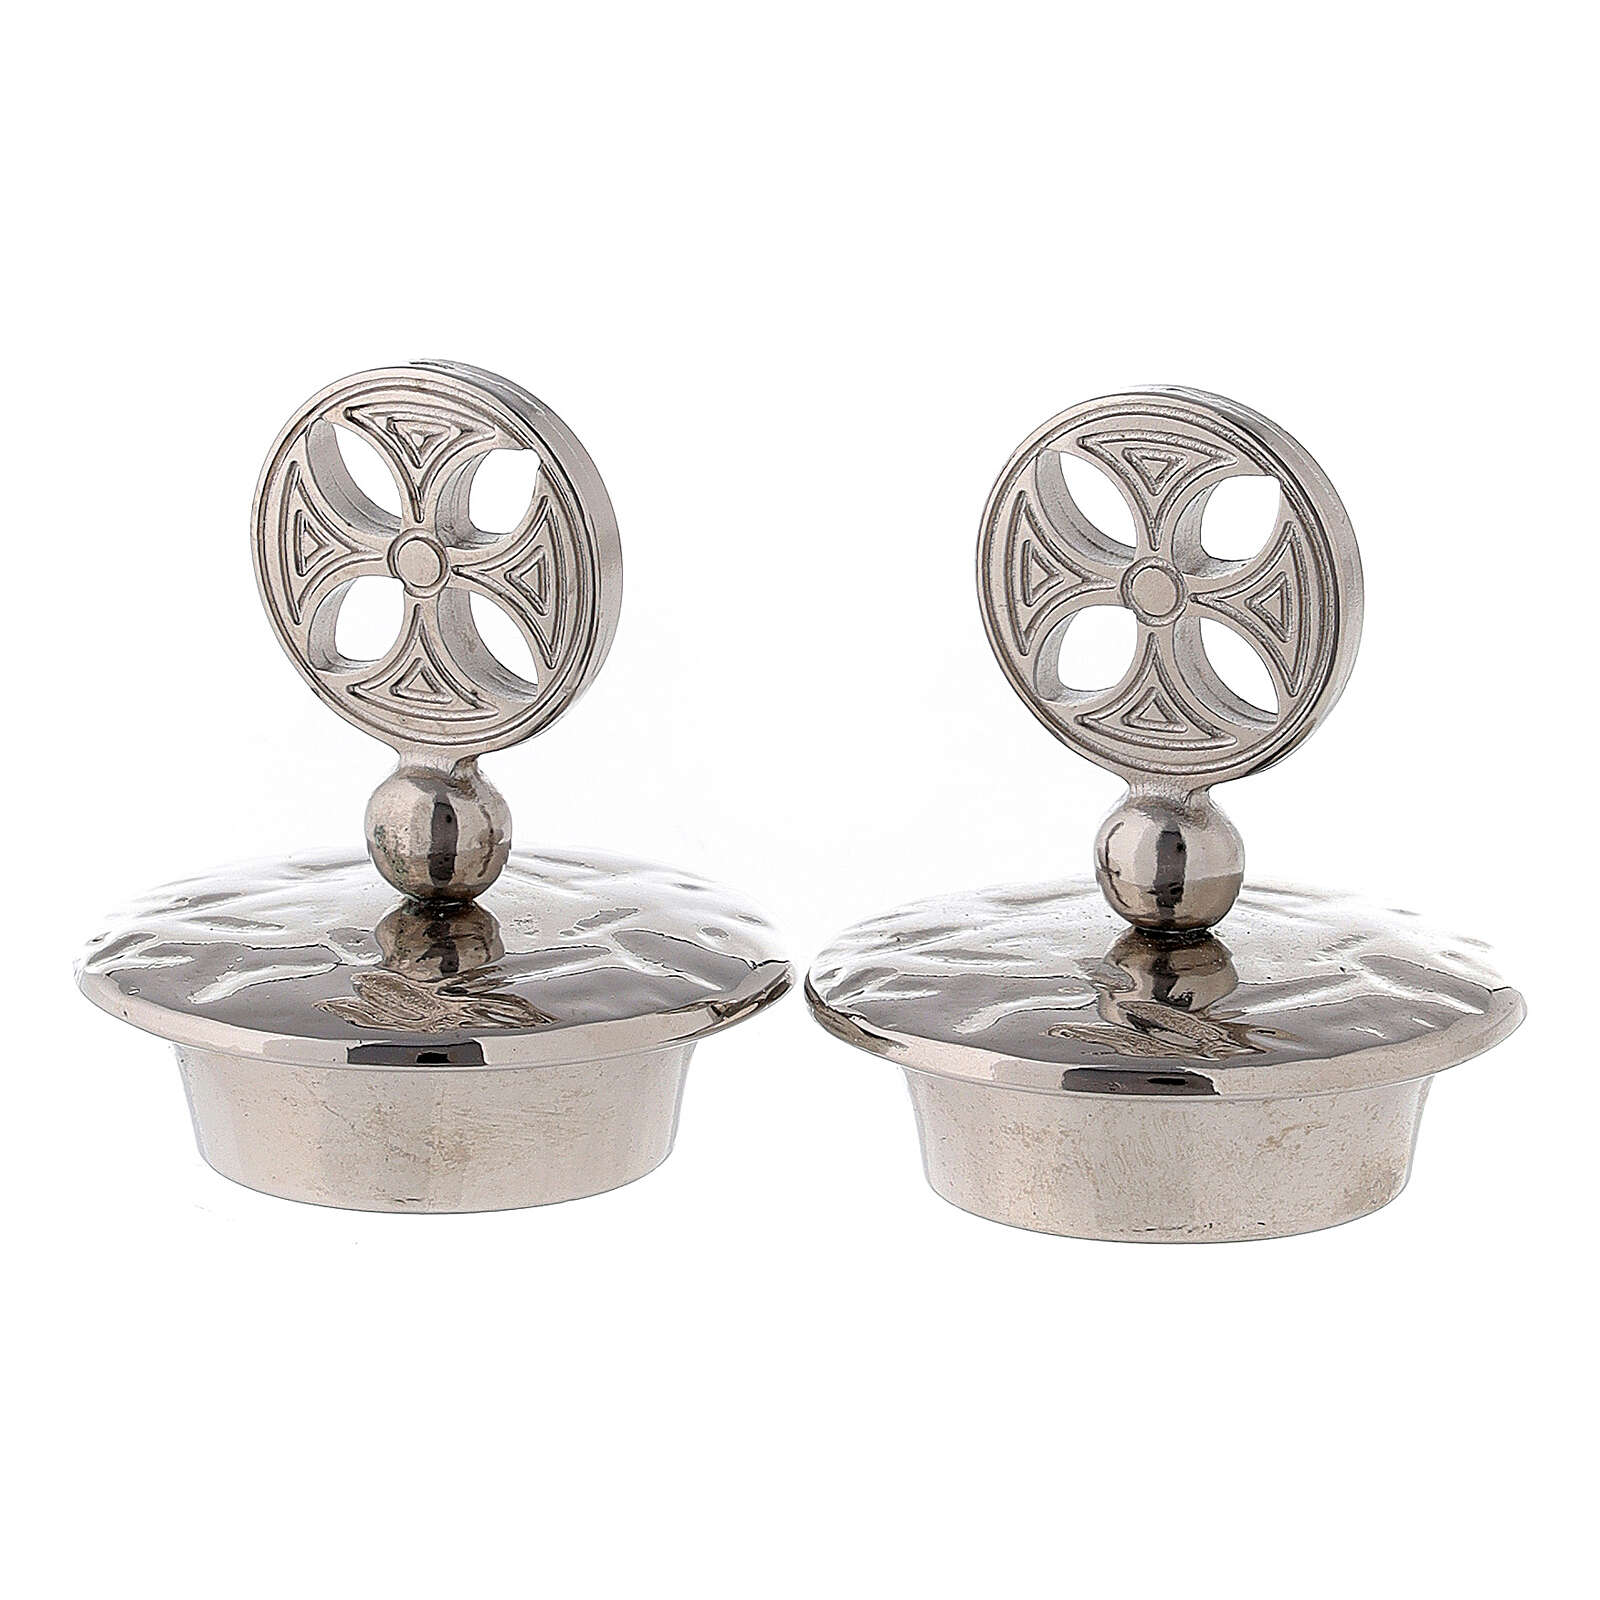 Lids for mass cruets Venise-Rome models round cross 4